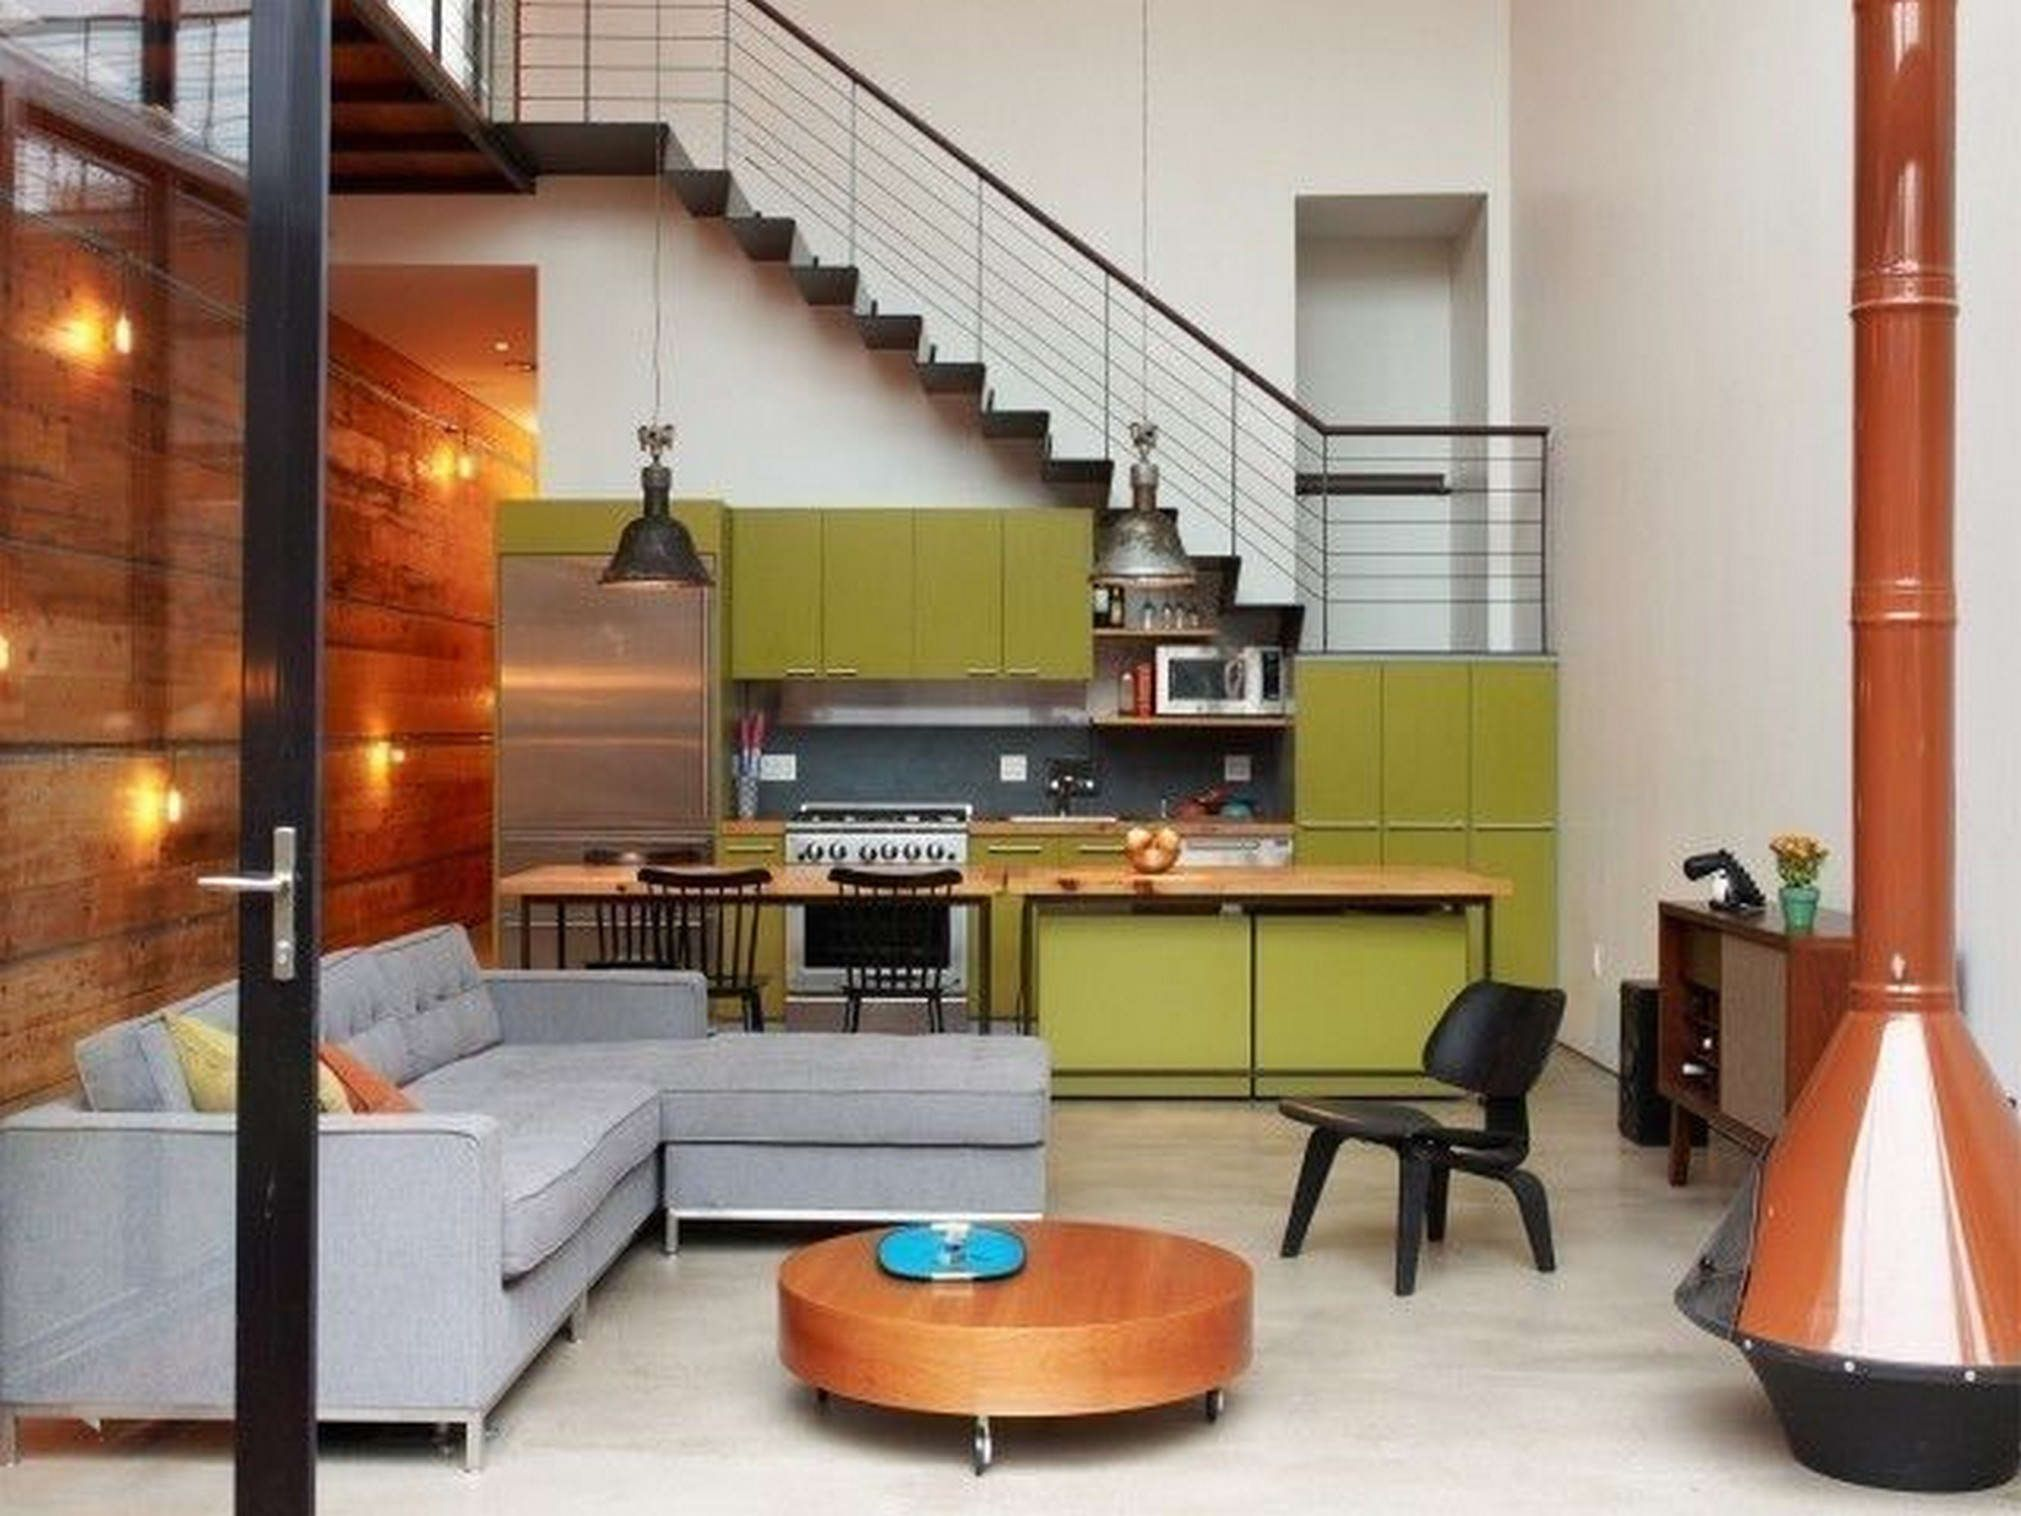 Awesome Kitchen Design Under Stairs Gallery 3D House Designs Awesome Kitchen  Design Under Stairs Gallery 3D House Designs